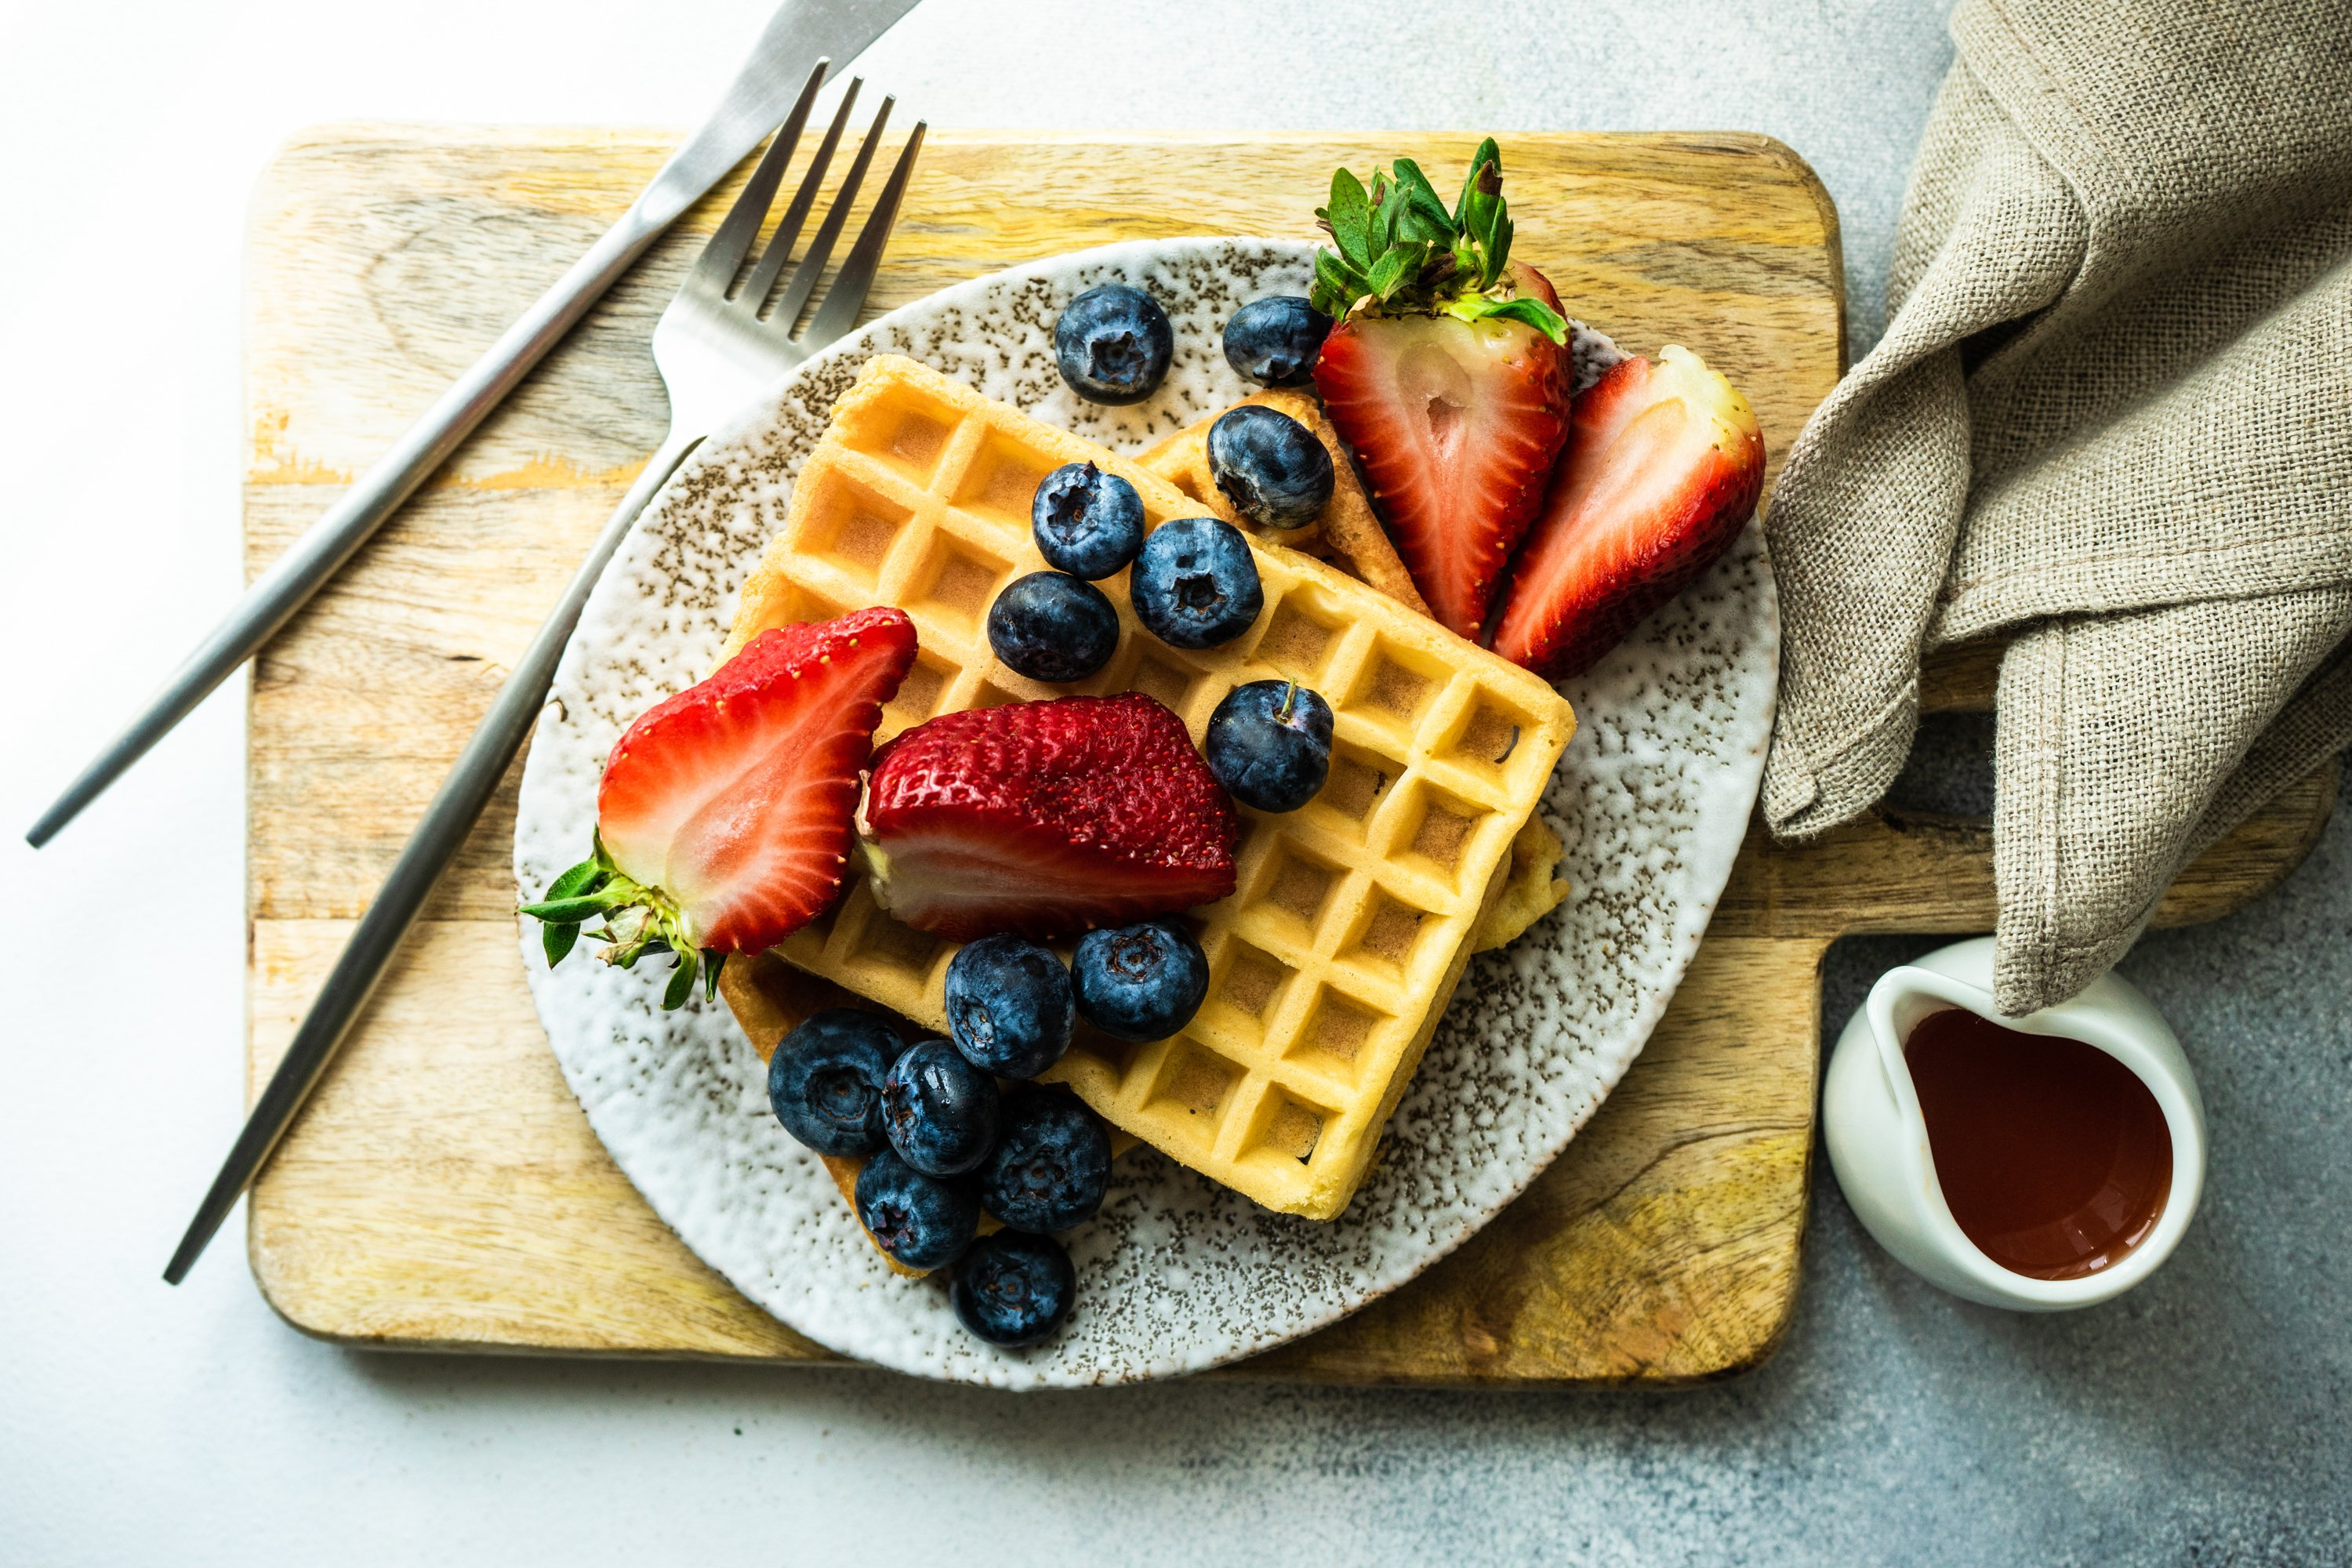 Traditional european breakfast with waffles example image 1